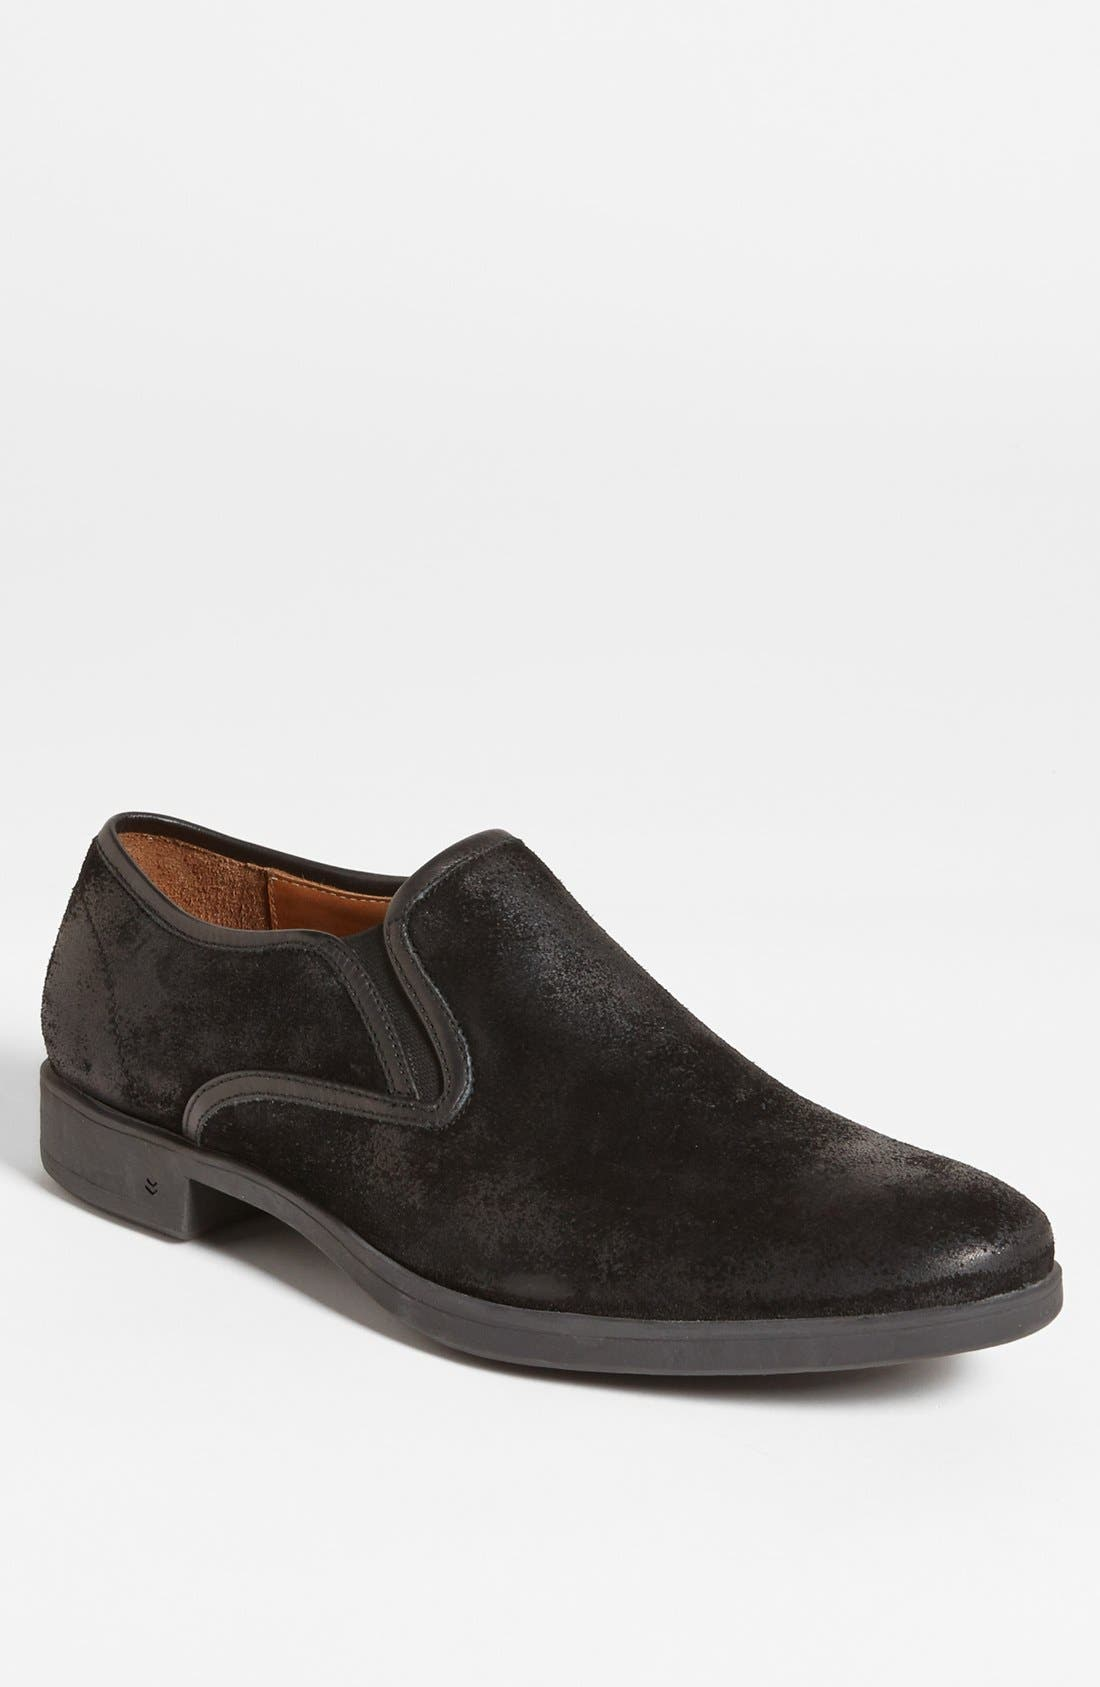 Alternate Image 1 Selected - John Varvatos Collection 'Dylan' Venetian Loafer